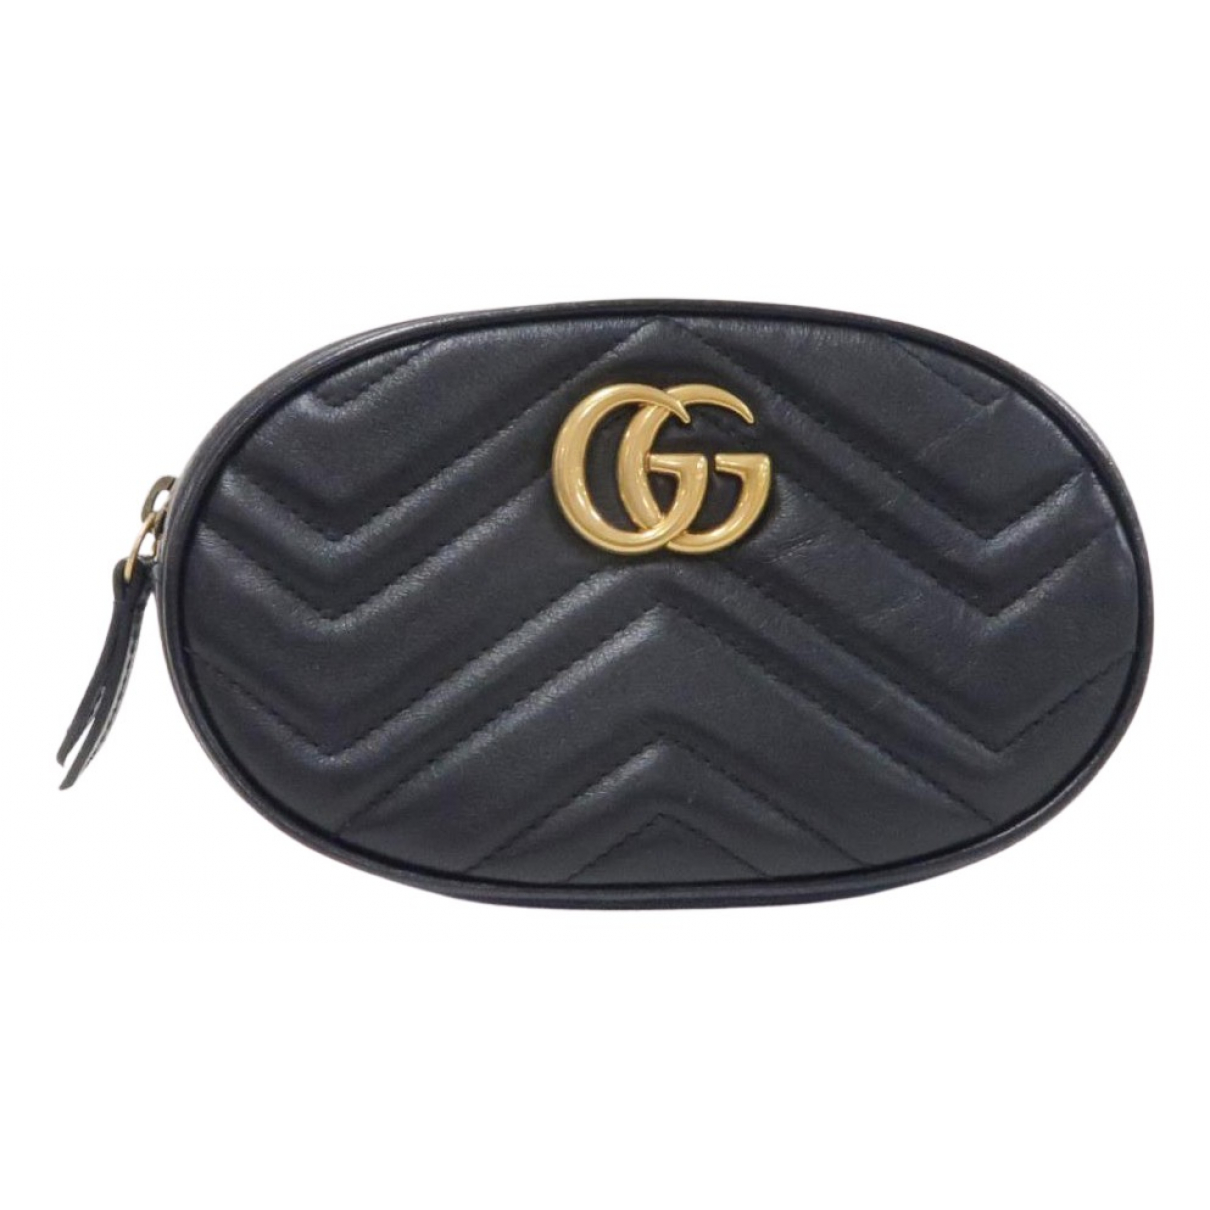 Gucci Marmont Black Leather Clutch bag for Women N